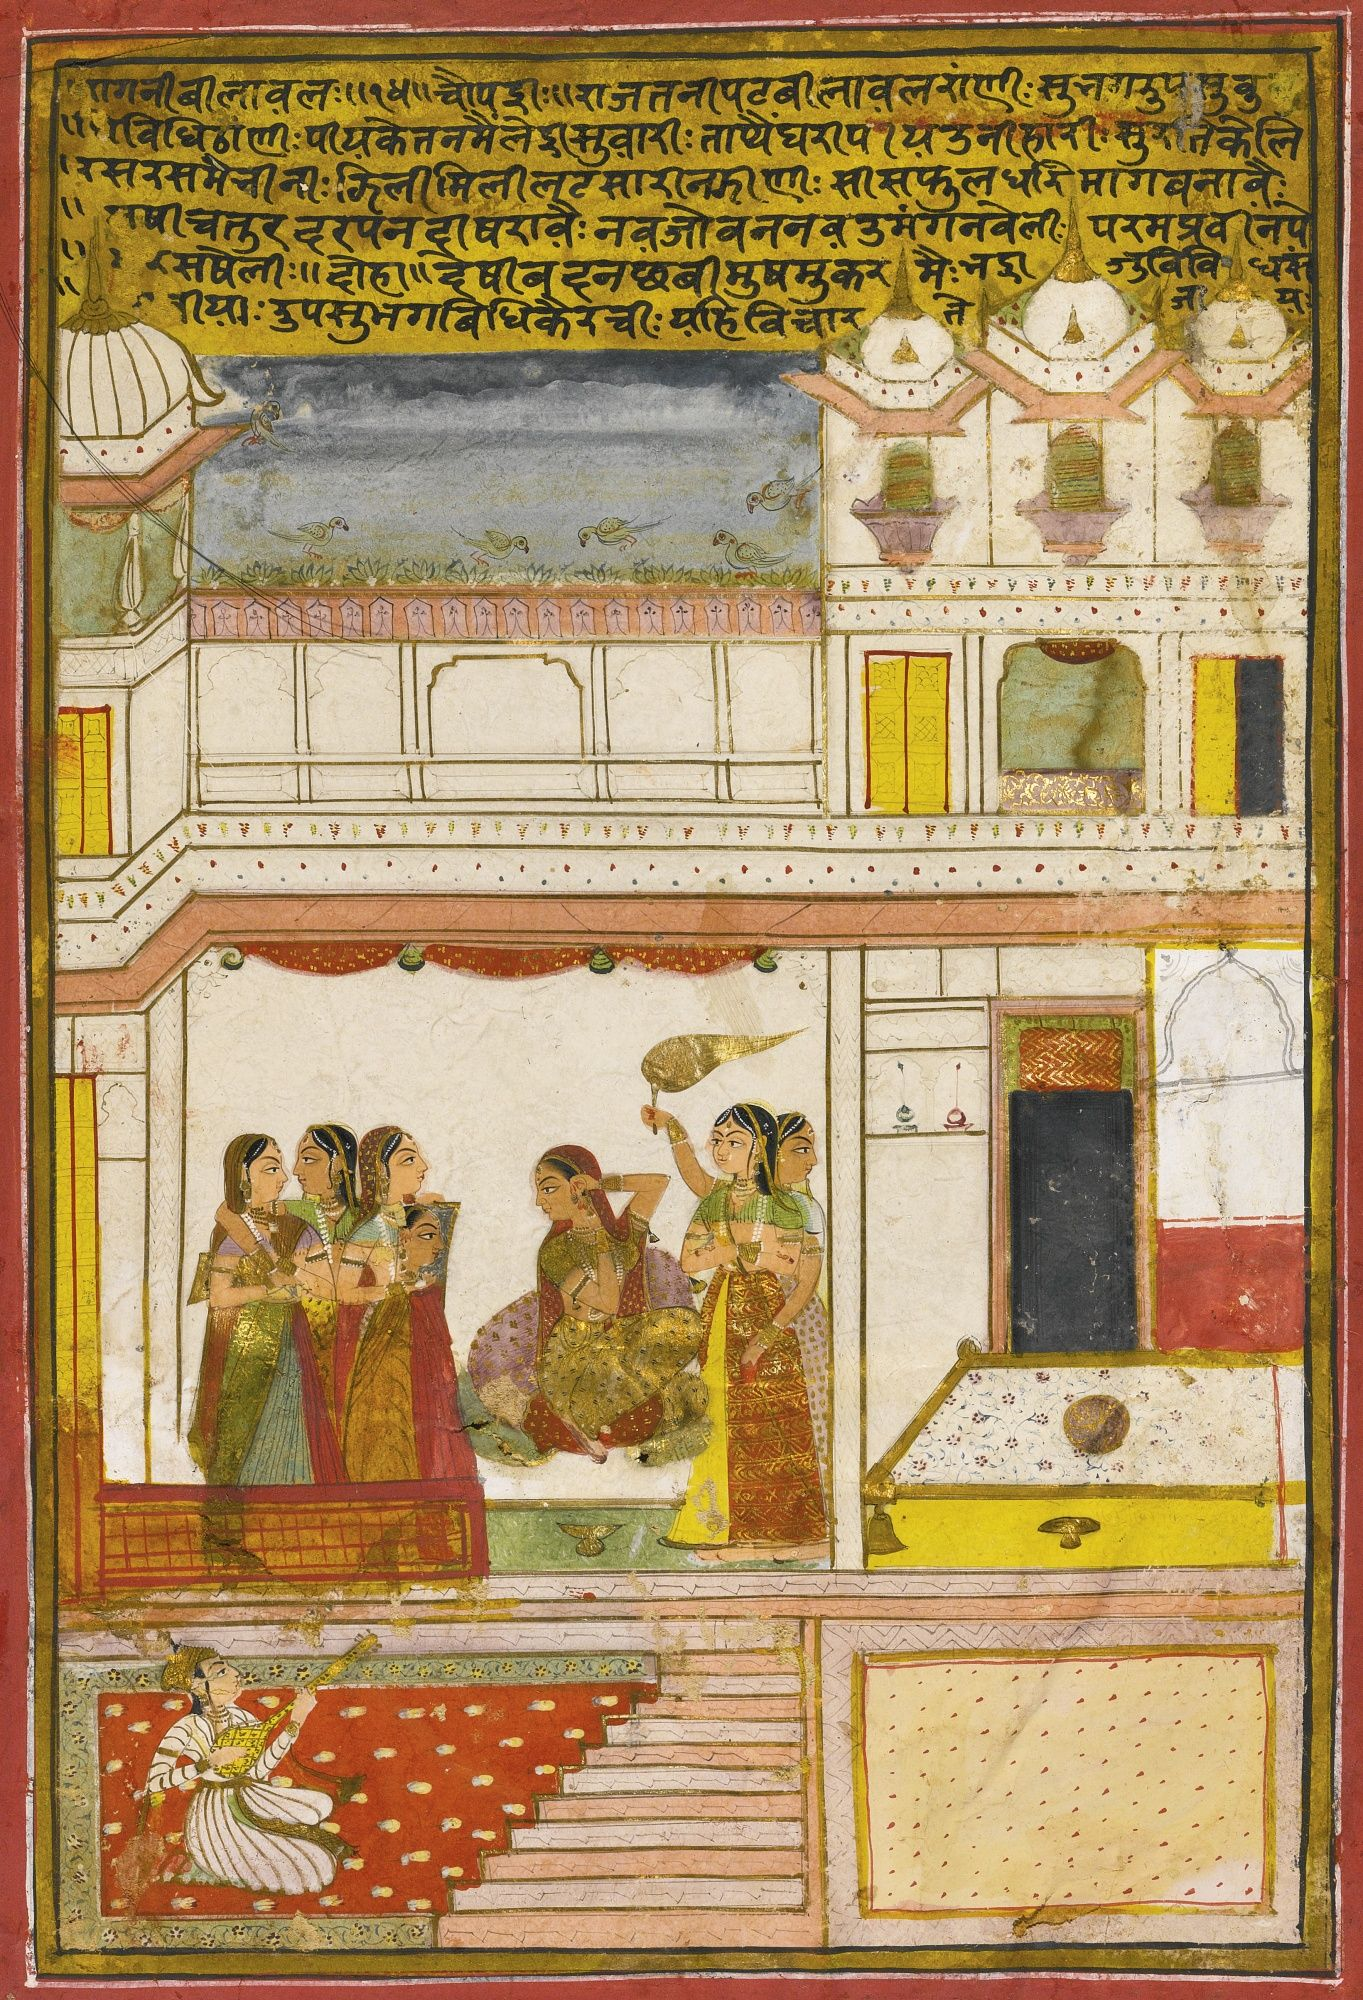 AN ILLUSTRATION TO A RAGAMALA SERIES: VILAVALA RAGINI | lot | Sotheby's